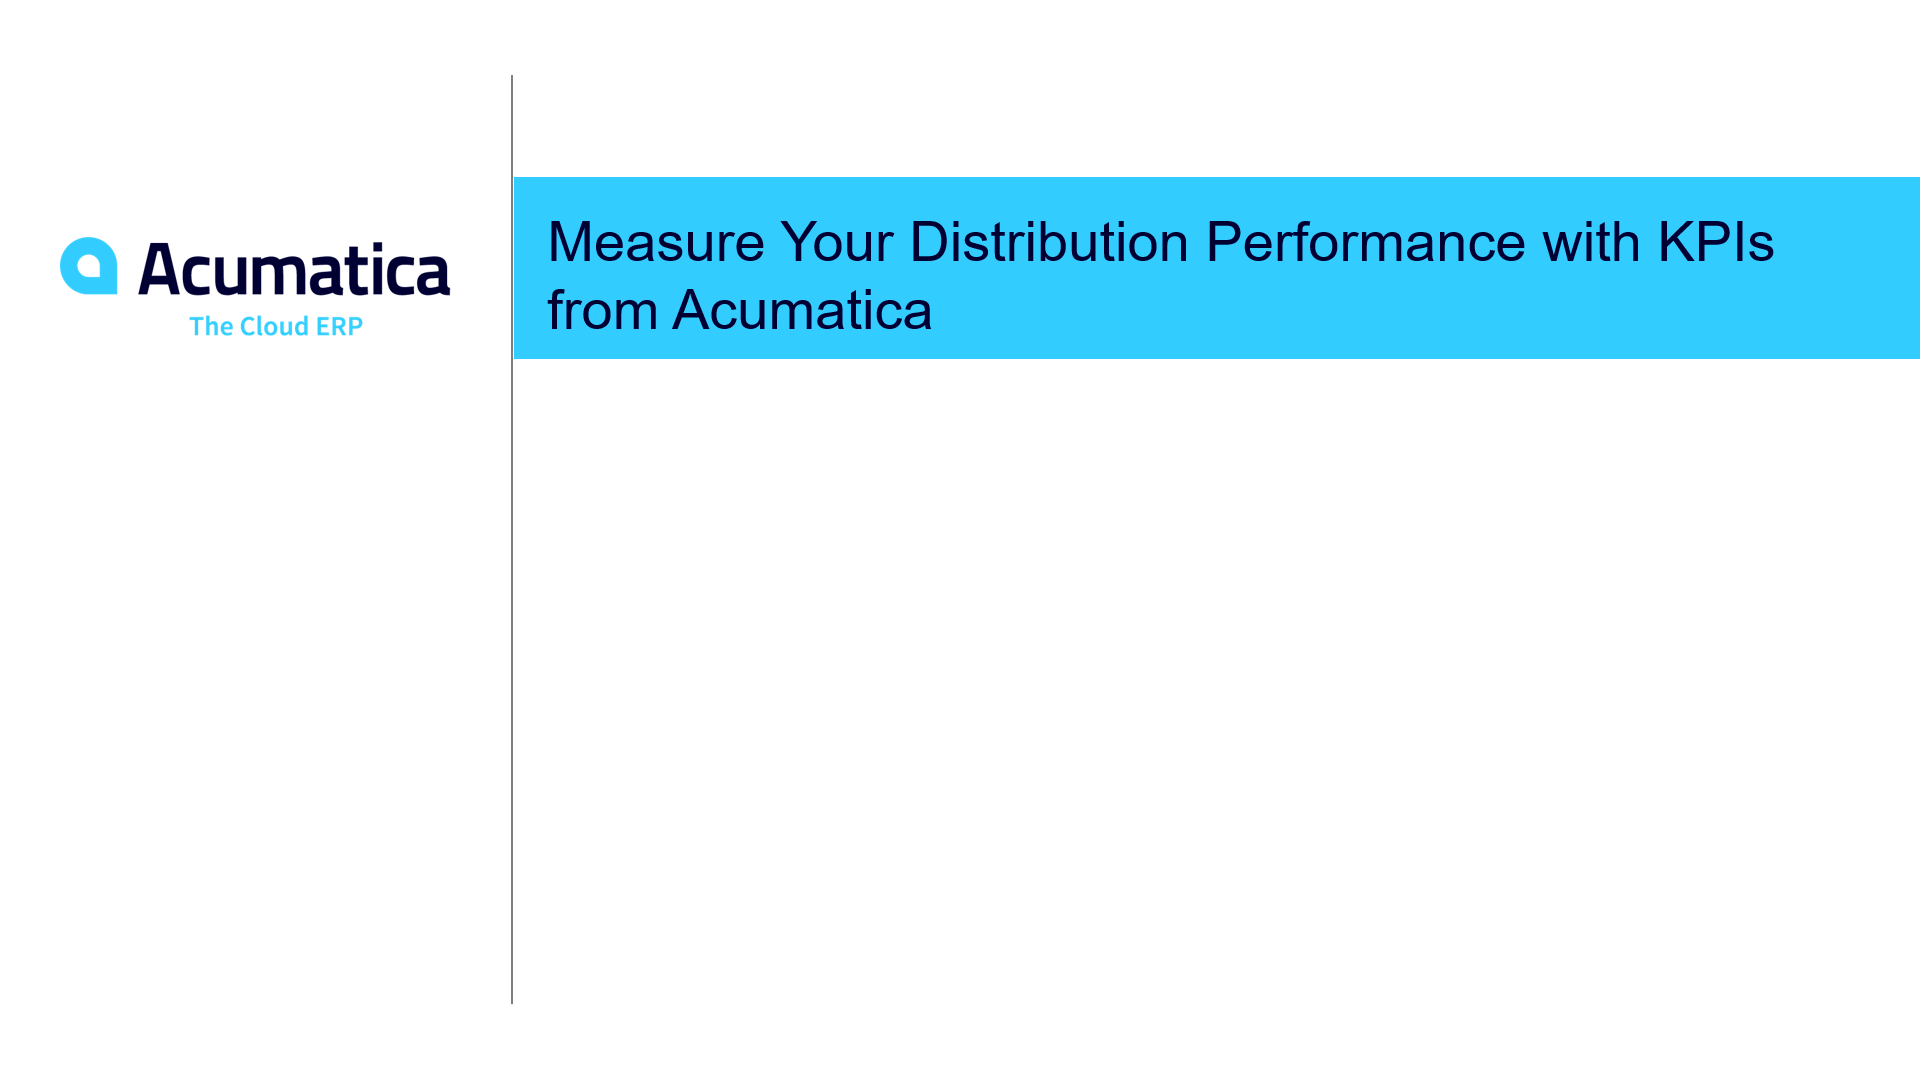 Measure Your Distribution Performance with KPIs from Acumatica